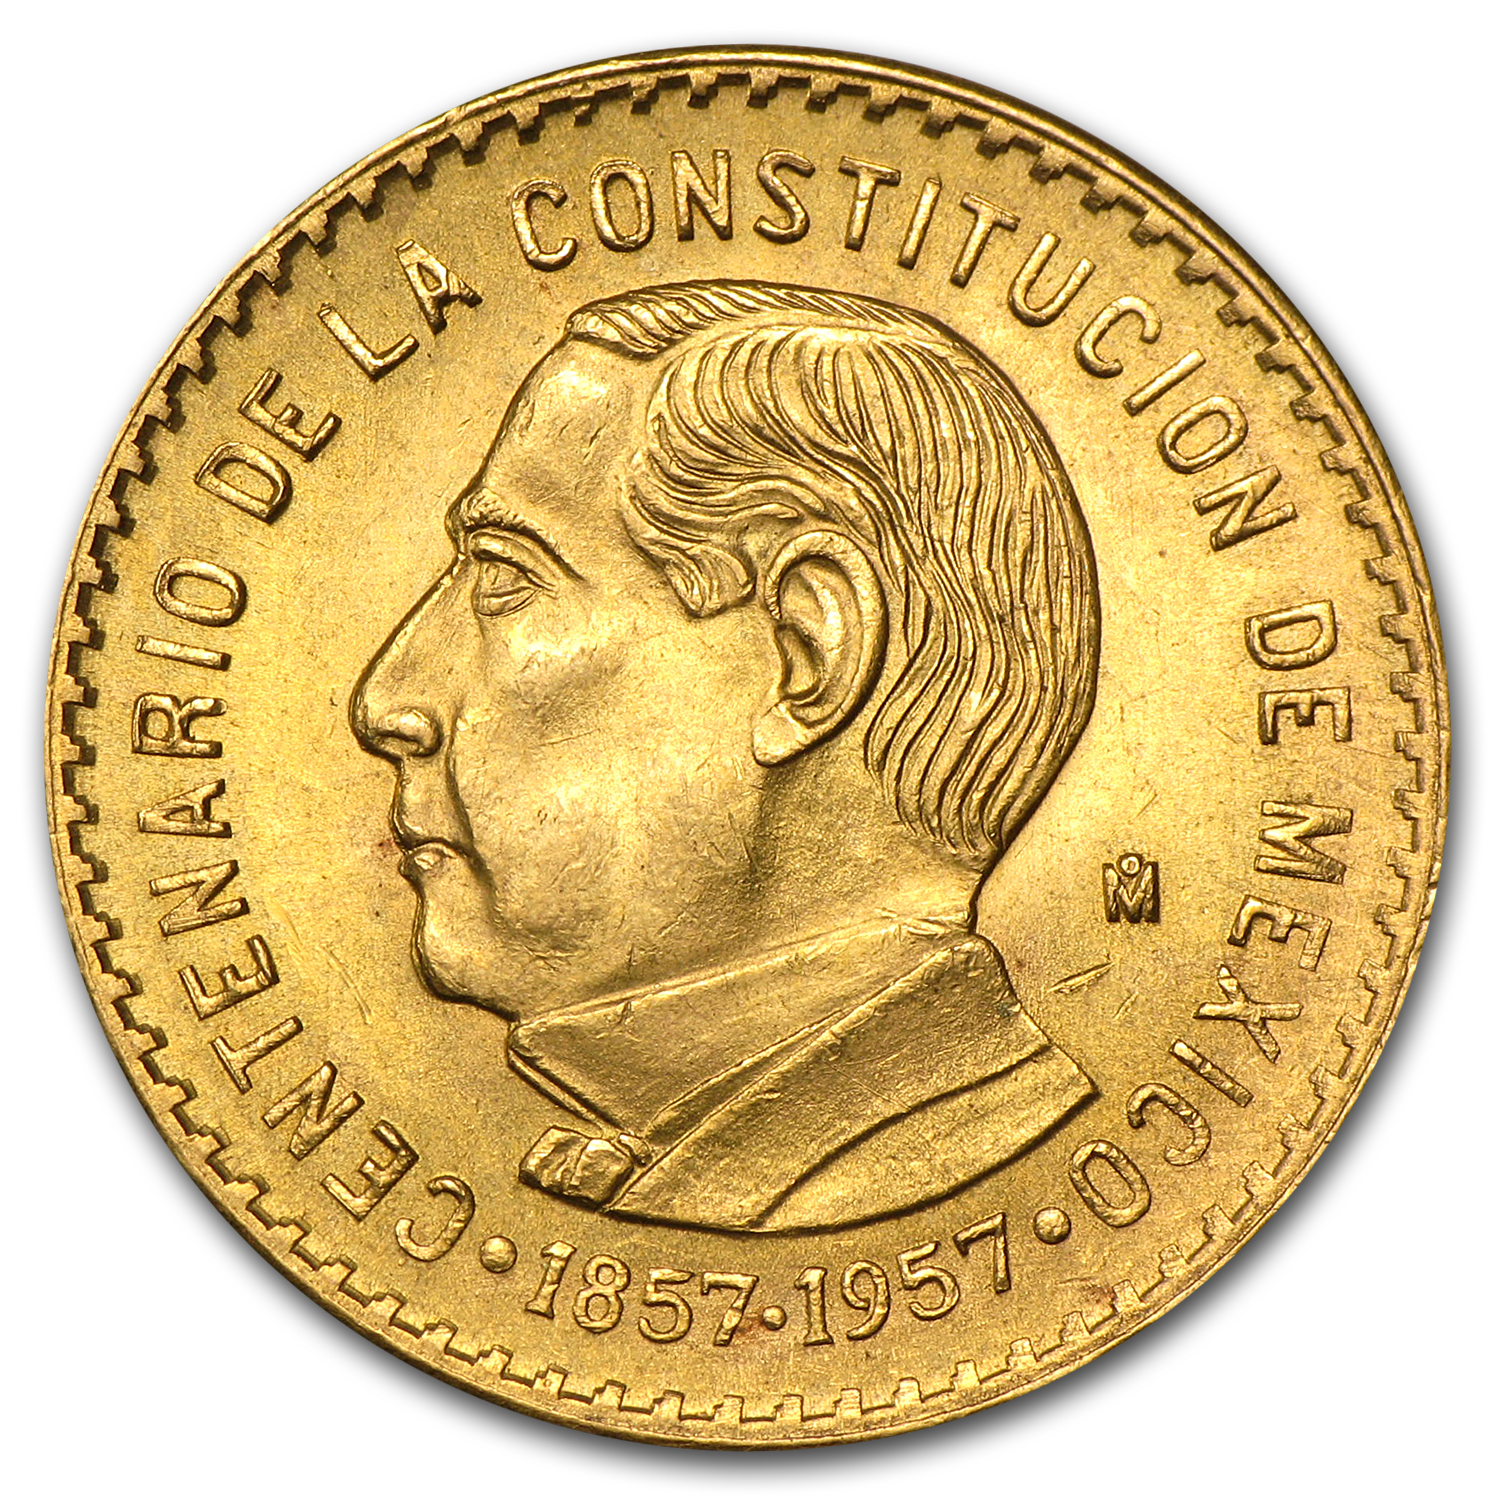 1957 Mexican Gold Centennial of the Constitution